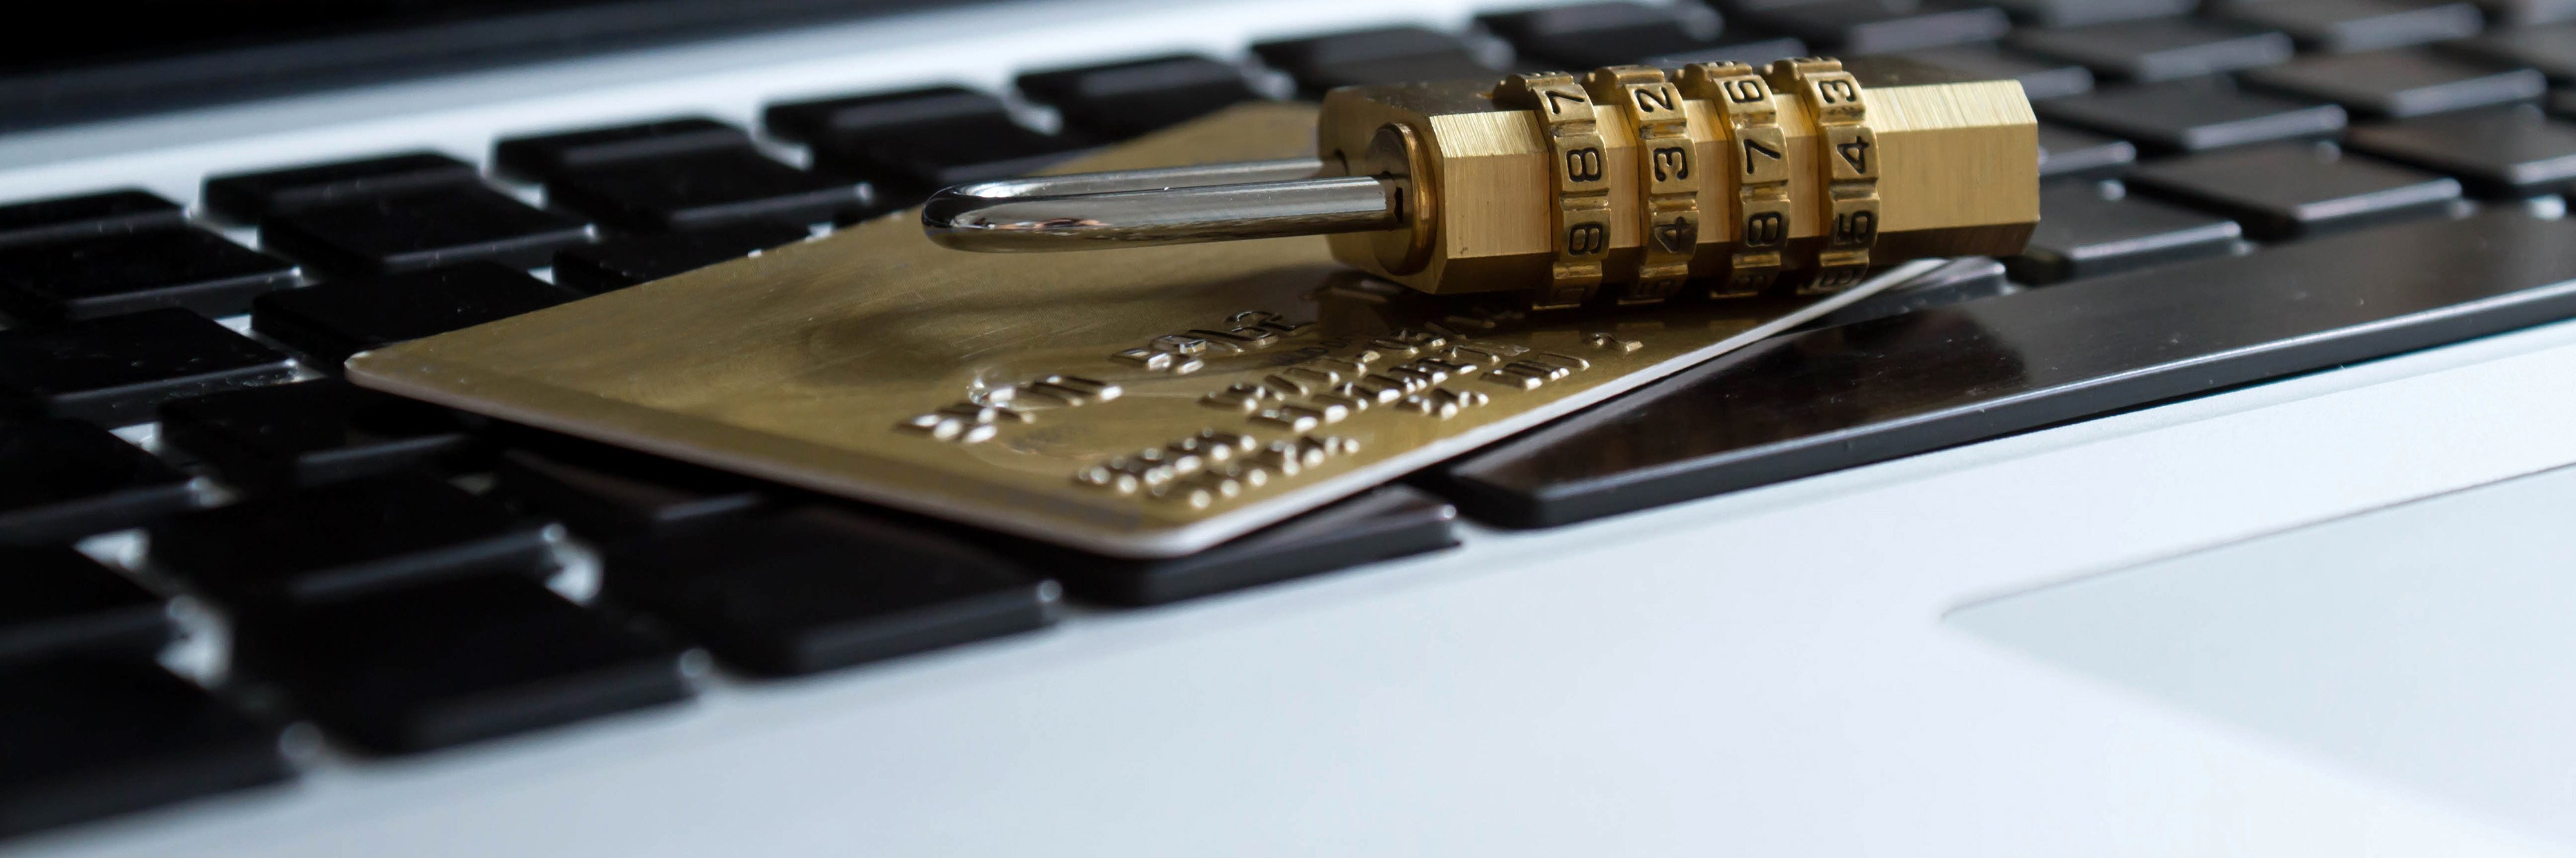 Business needs to reduce cyber threat to payment card data